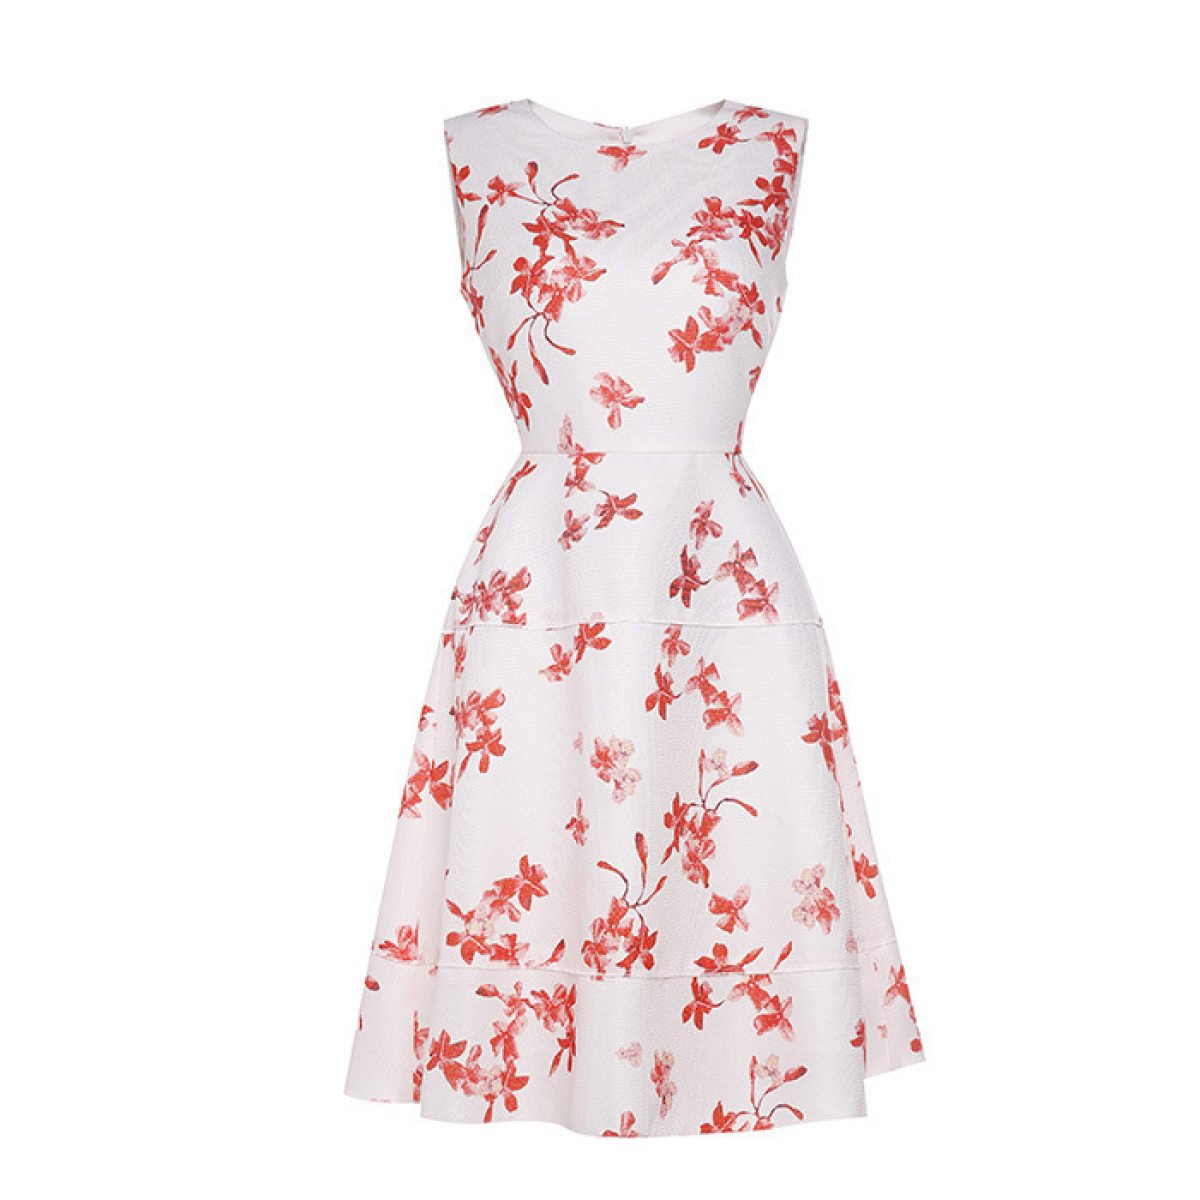 China Palaeowind Women Spring And Summer Large Waist Print Dress Code,White-L